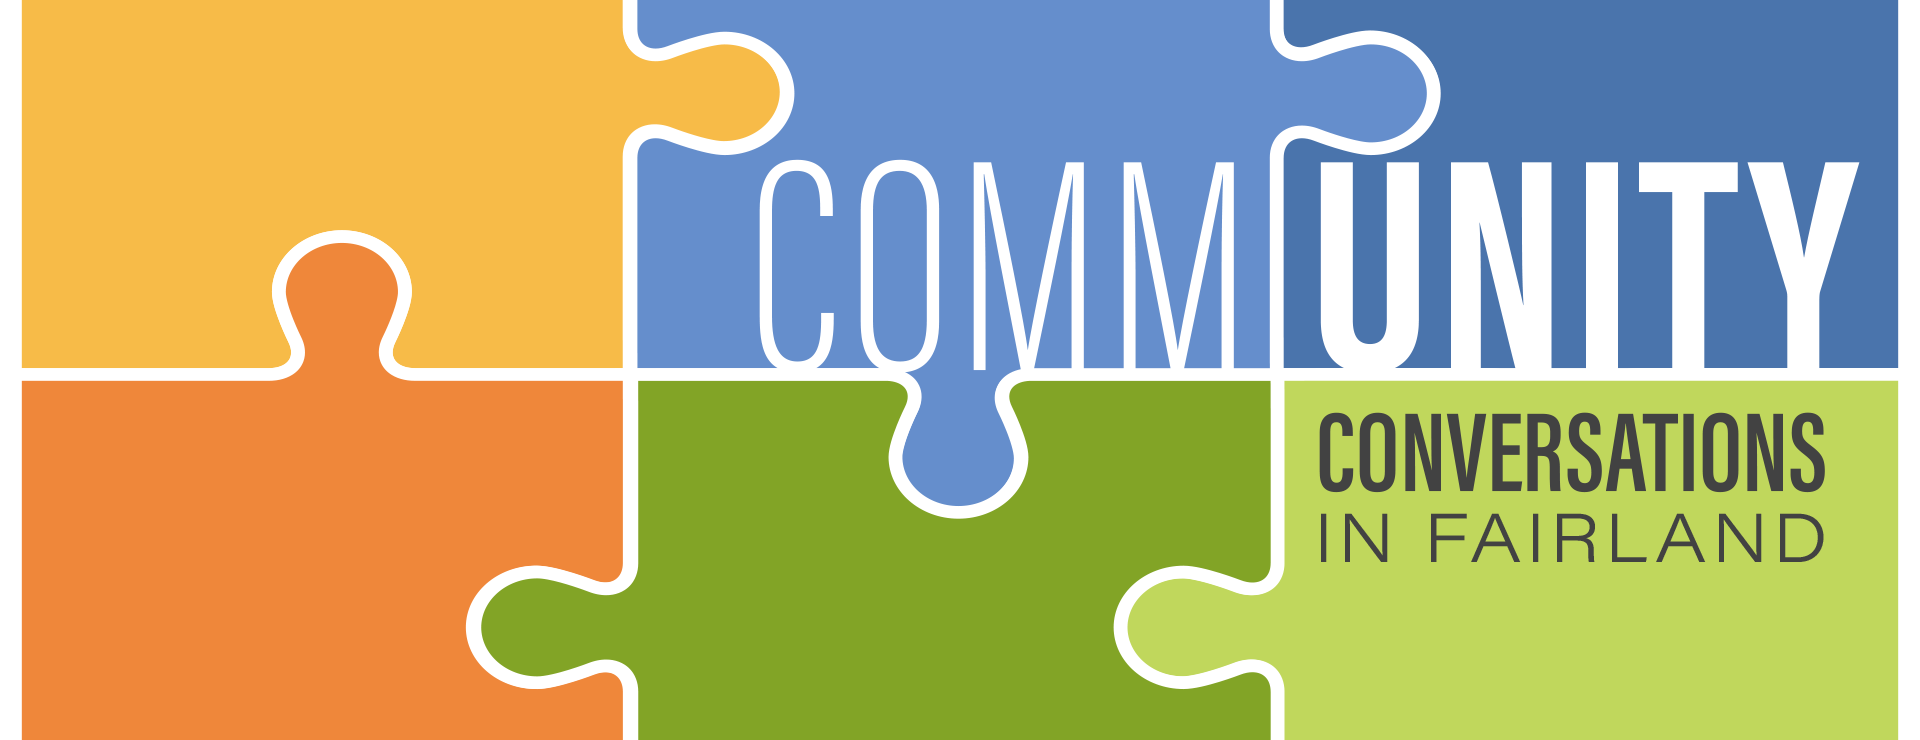 Fairland community conversations graphic (cropped)